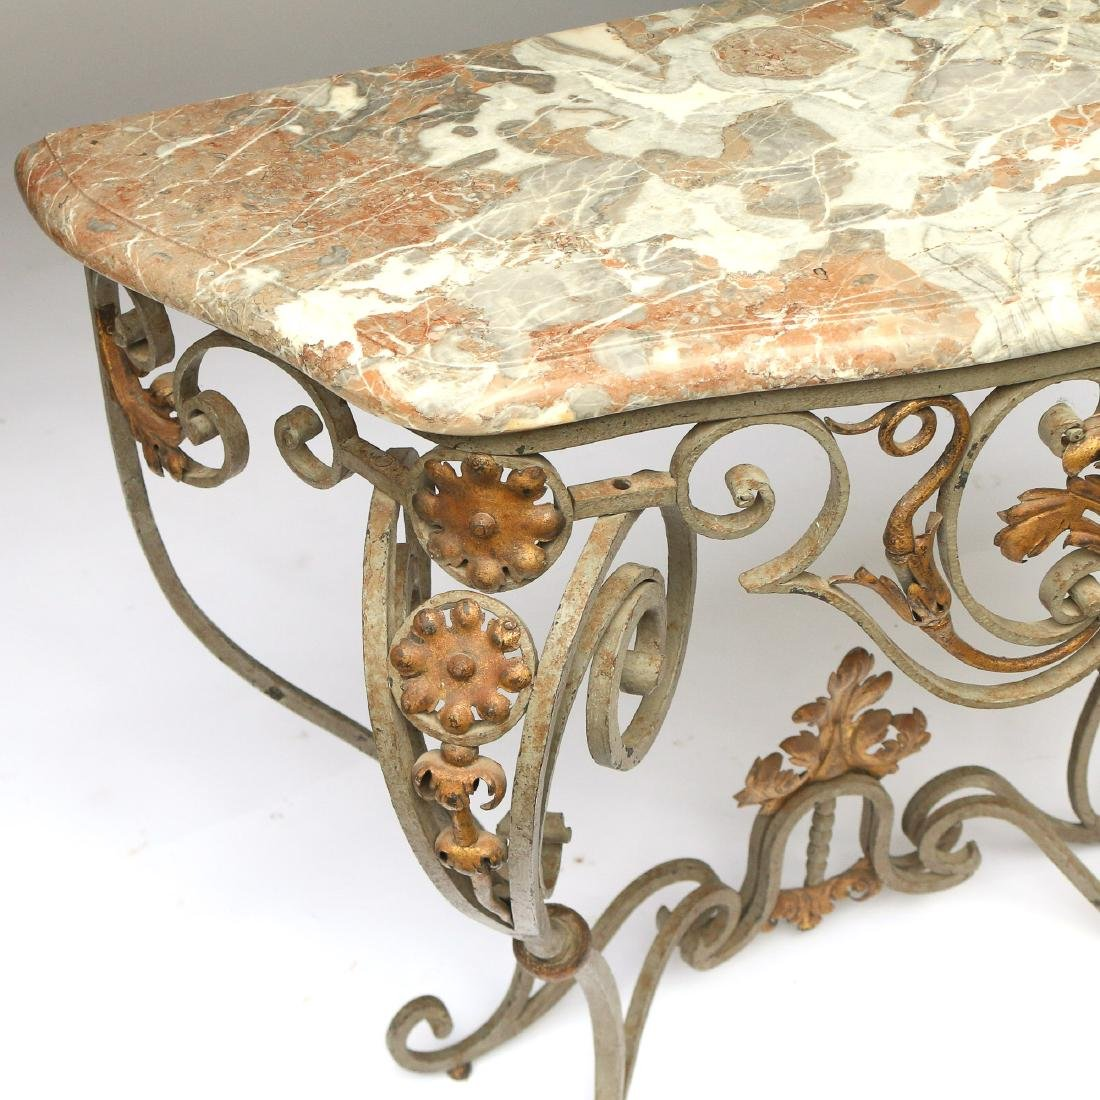 ANTIQUE FRENCH WROUGHT-IRON & MARBLE CONSOLE TABLE - 3